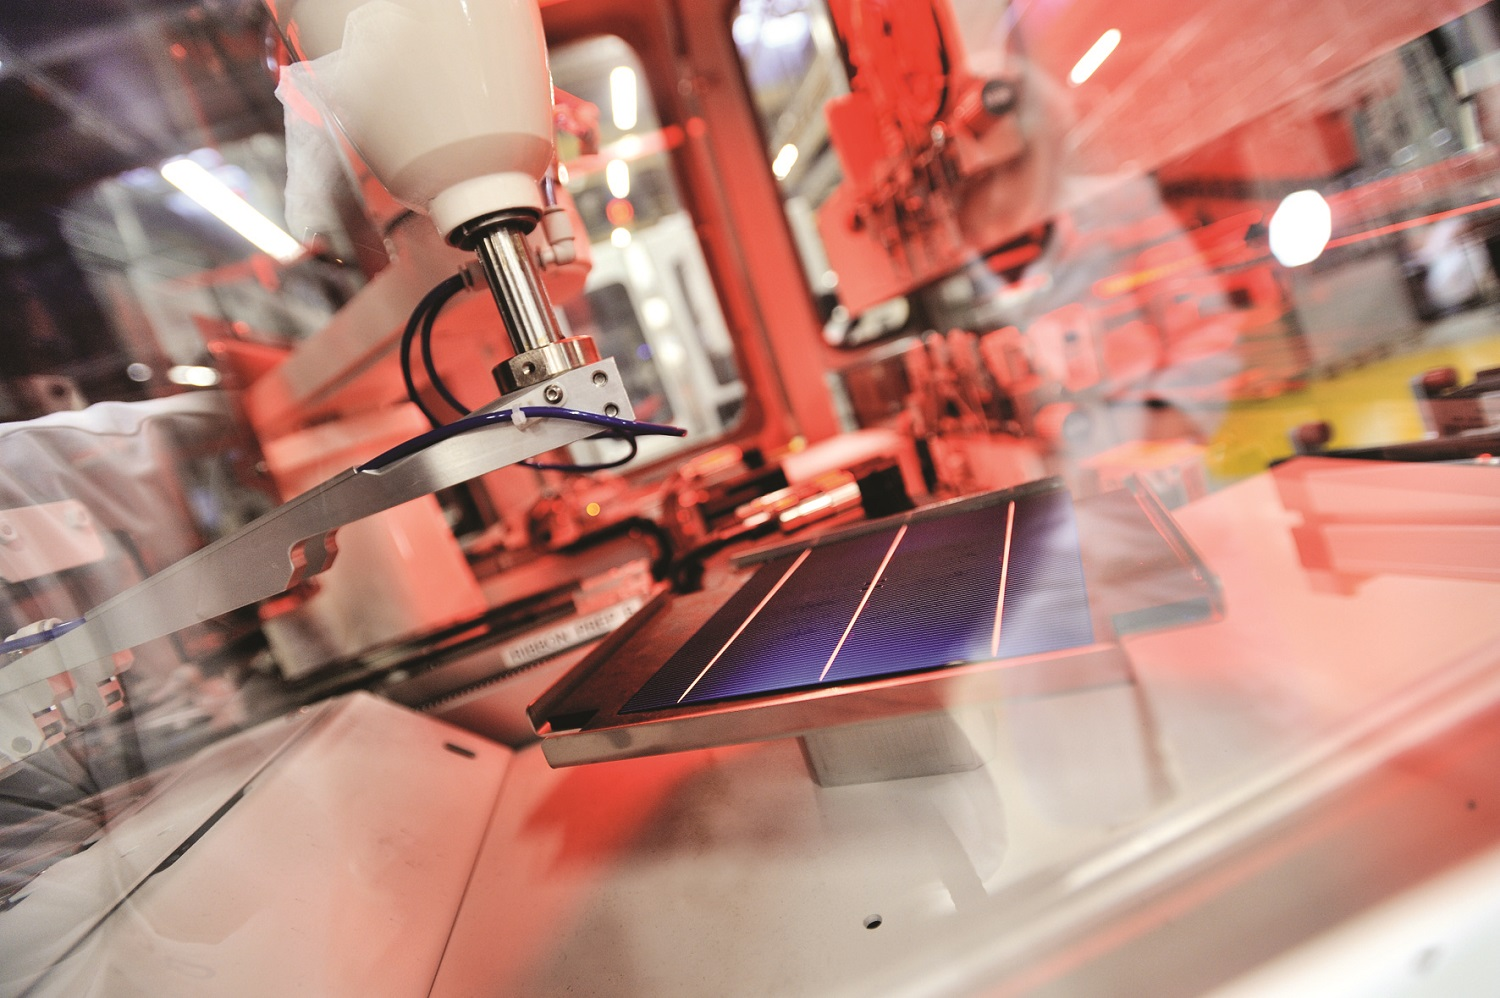 The new report has been devised bottom-up, with a new methodology that accesses the wealth of market data accumulated by PV Tech over the past decade. Image: Hanwha Q CELLS.